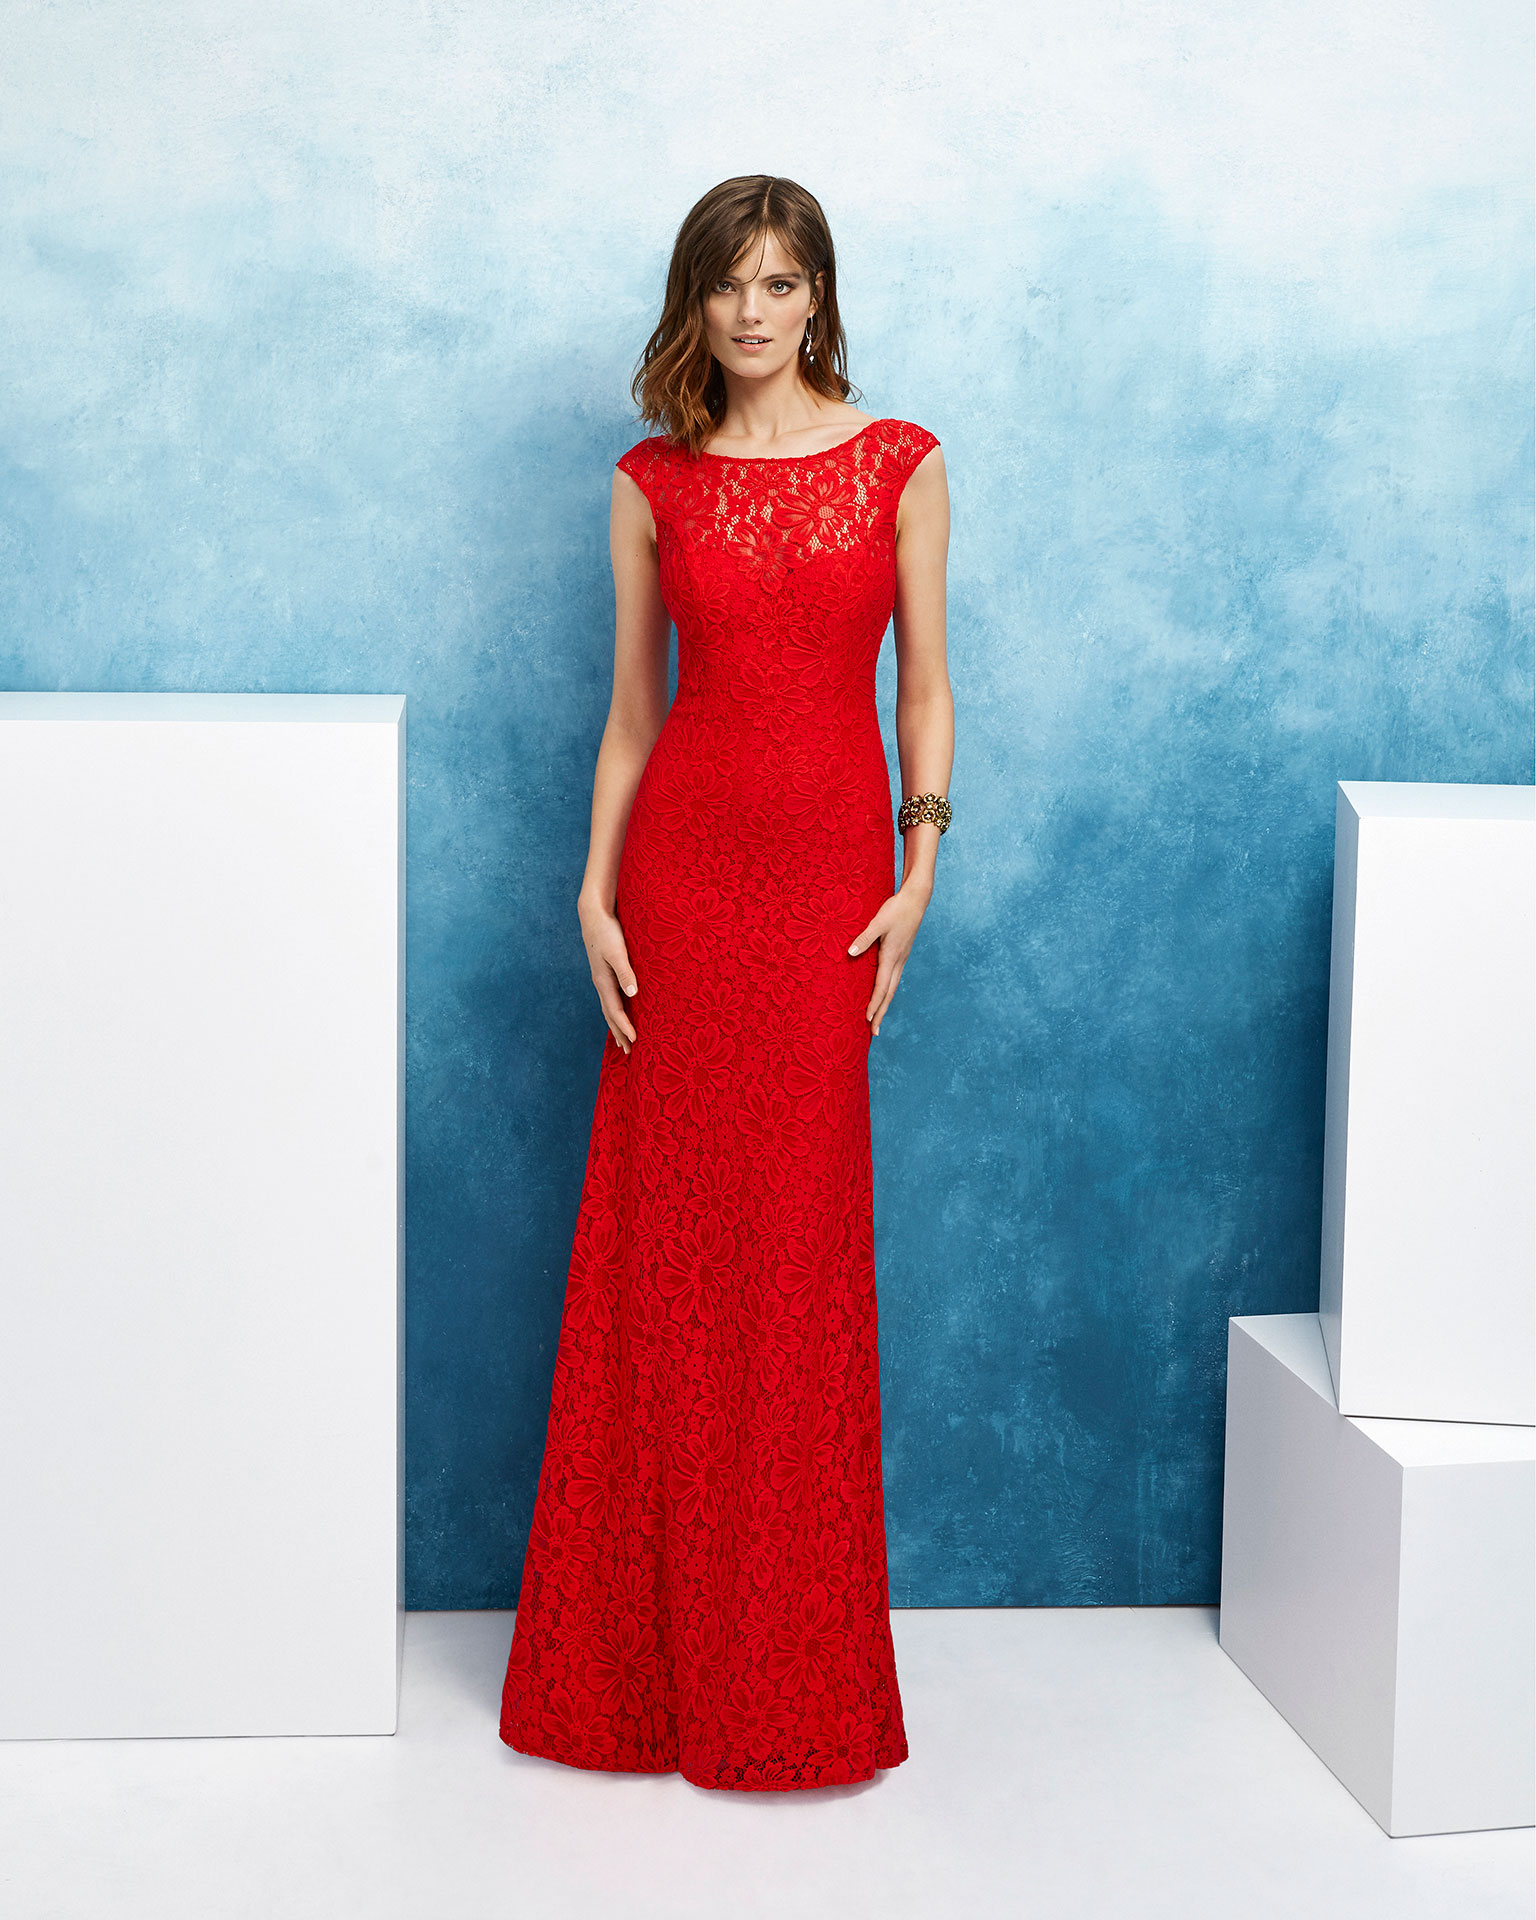 Ballgown-style lace cocktail dress. Round neckline, short sleeves and low back. 2019 FIESTA AIRE BARCELONA Collection.